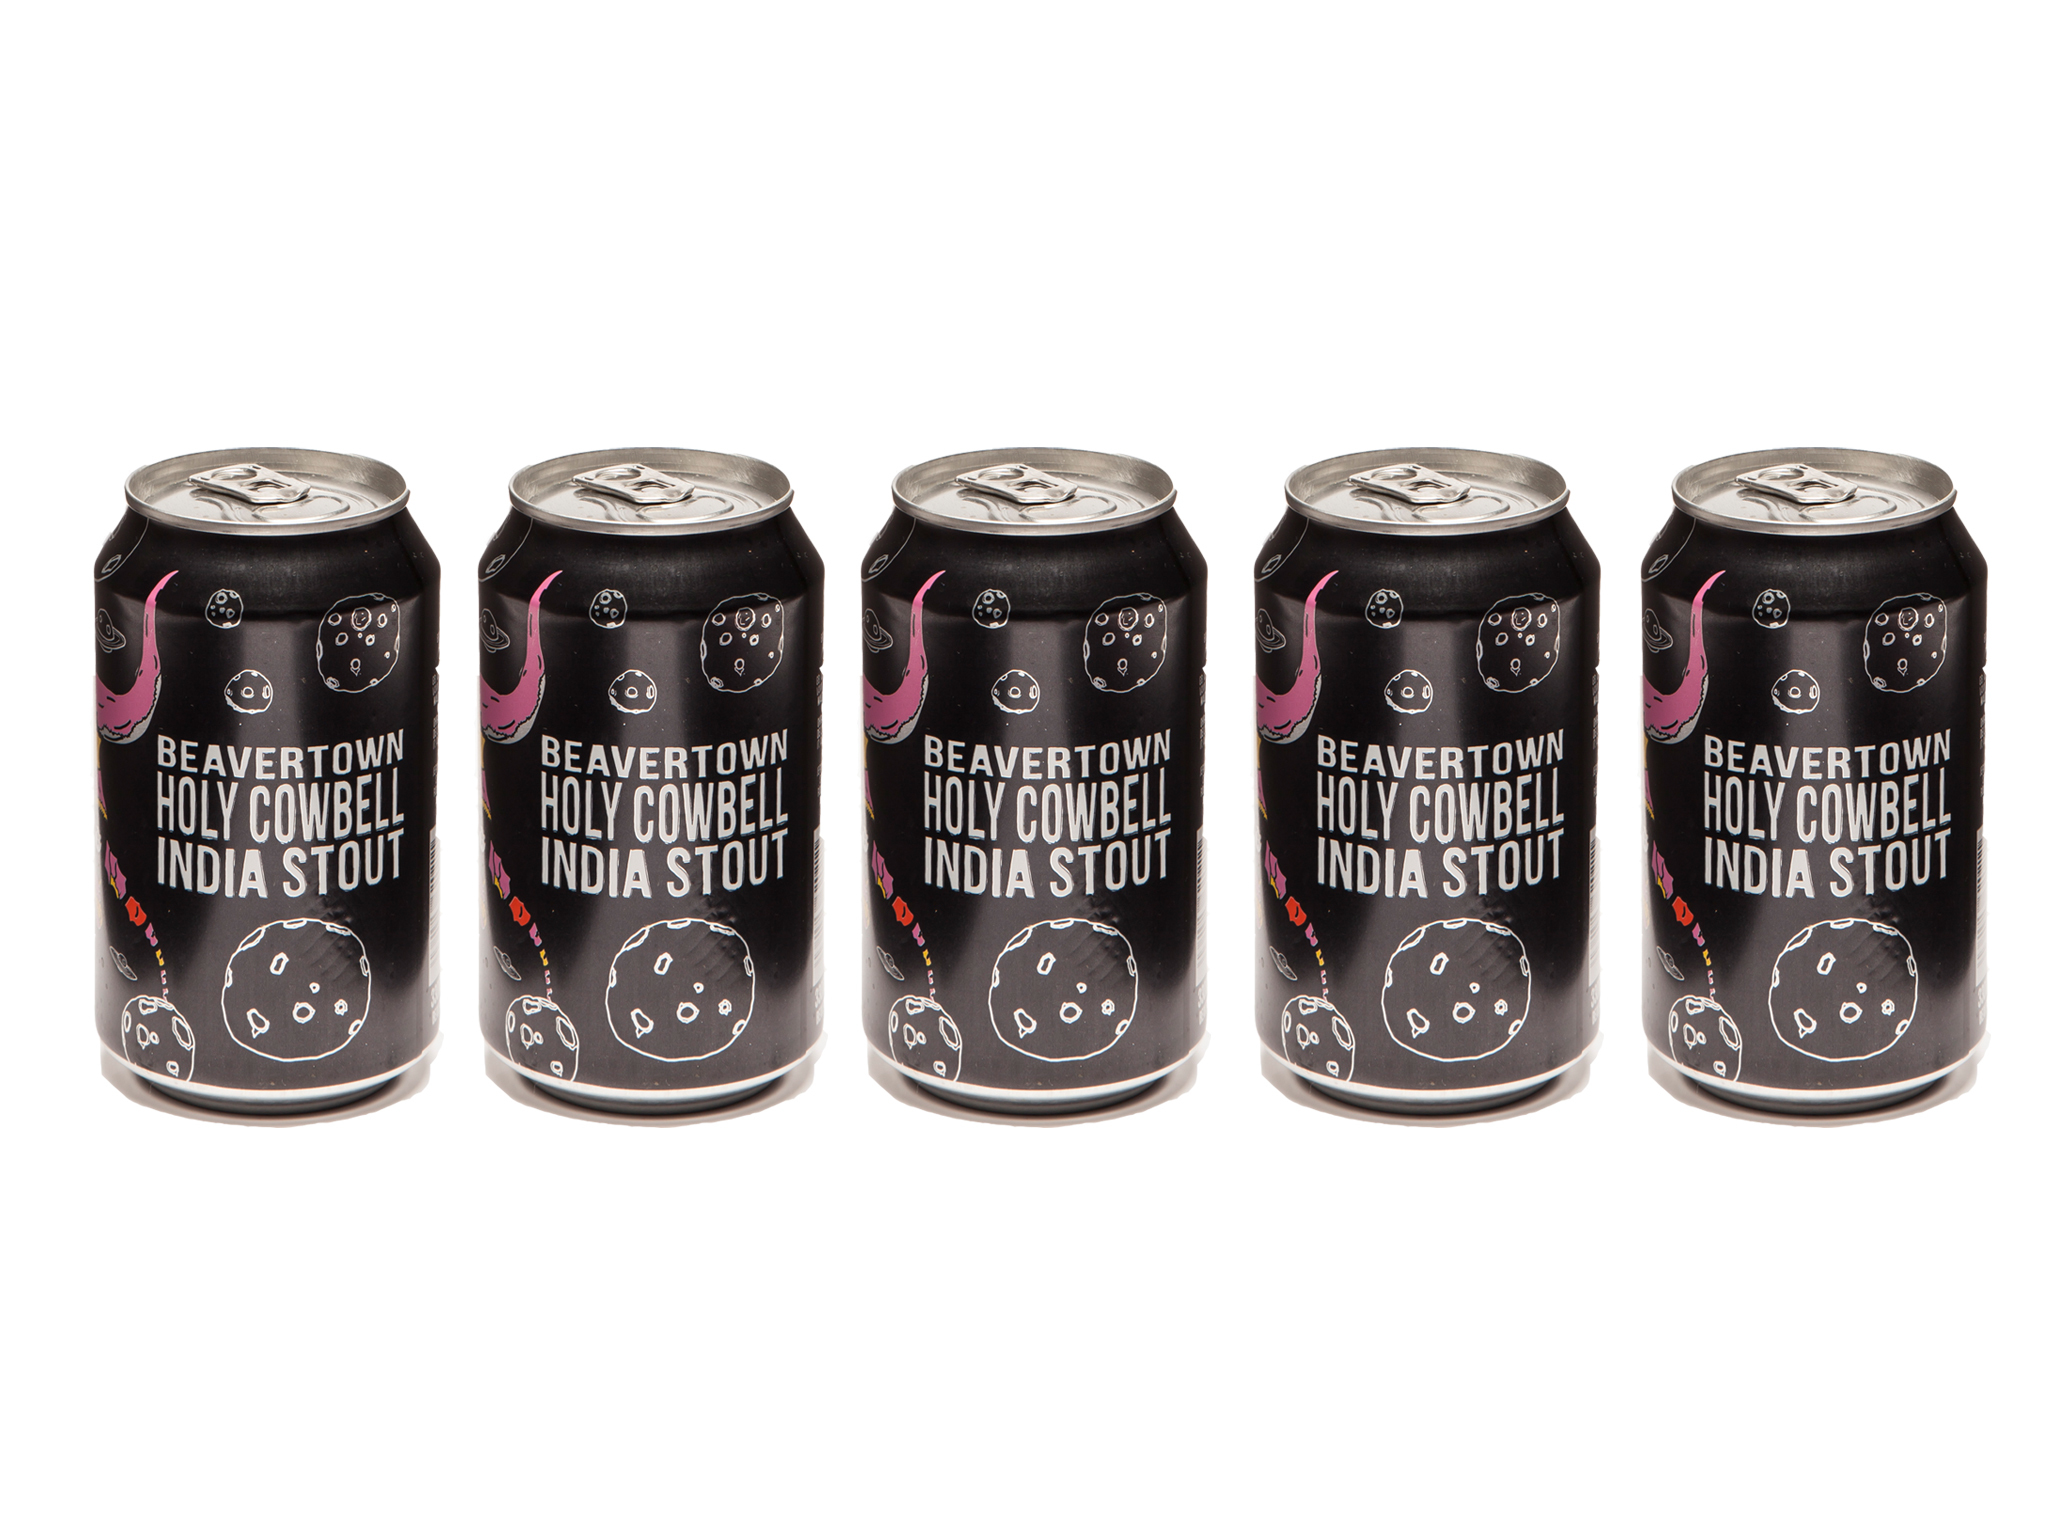 London's best craft beer, beavertown holy cowbell